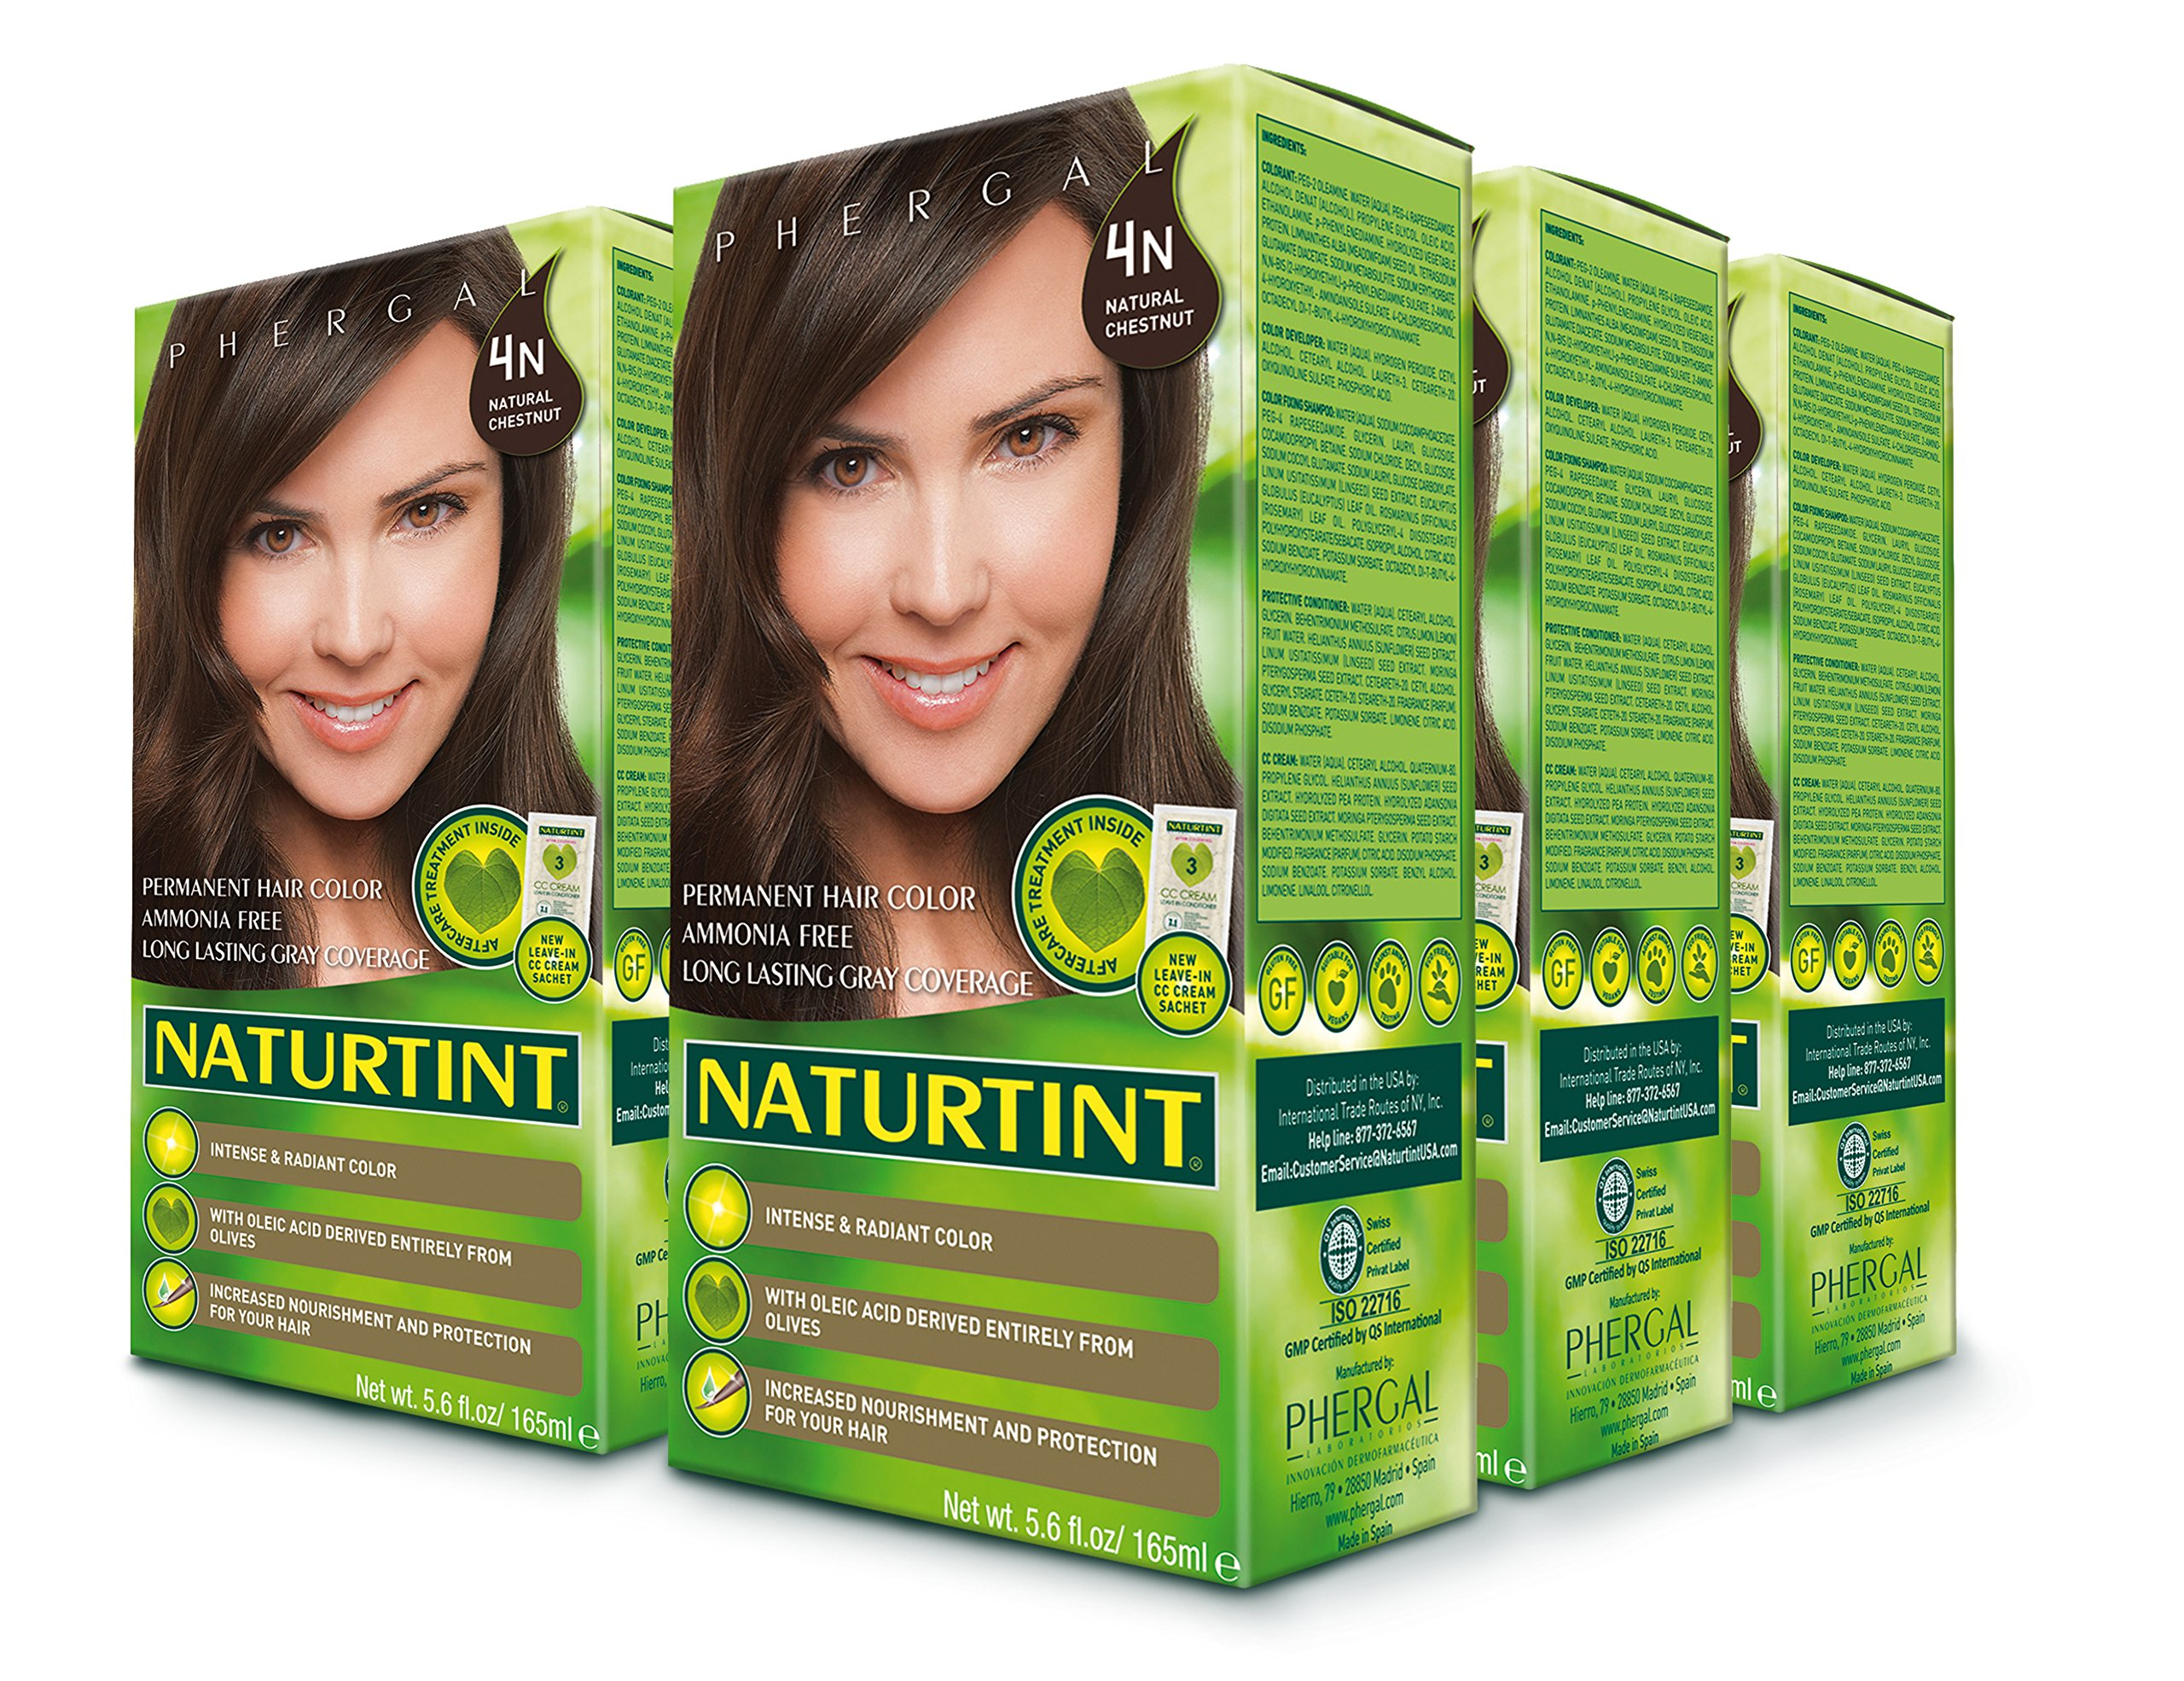 Naturtint Permanent Hair Color - 4N Natural Chestnut, 5.28 fl oz (6-pack)